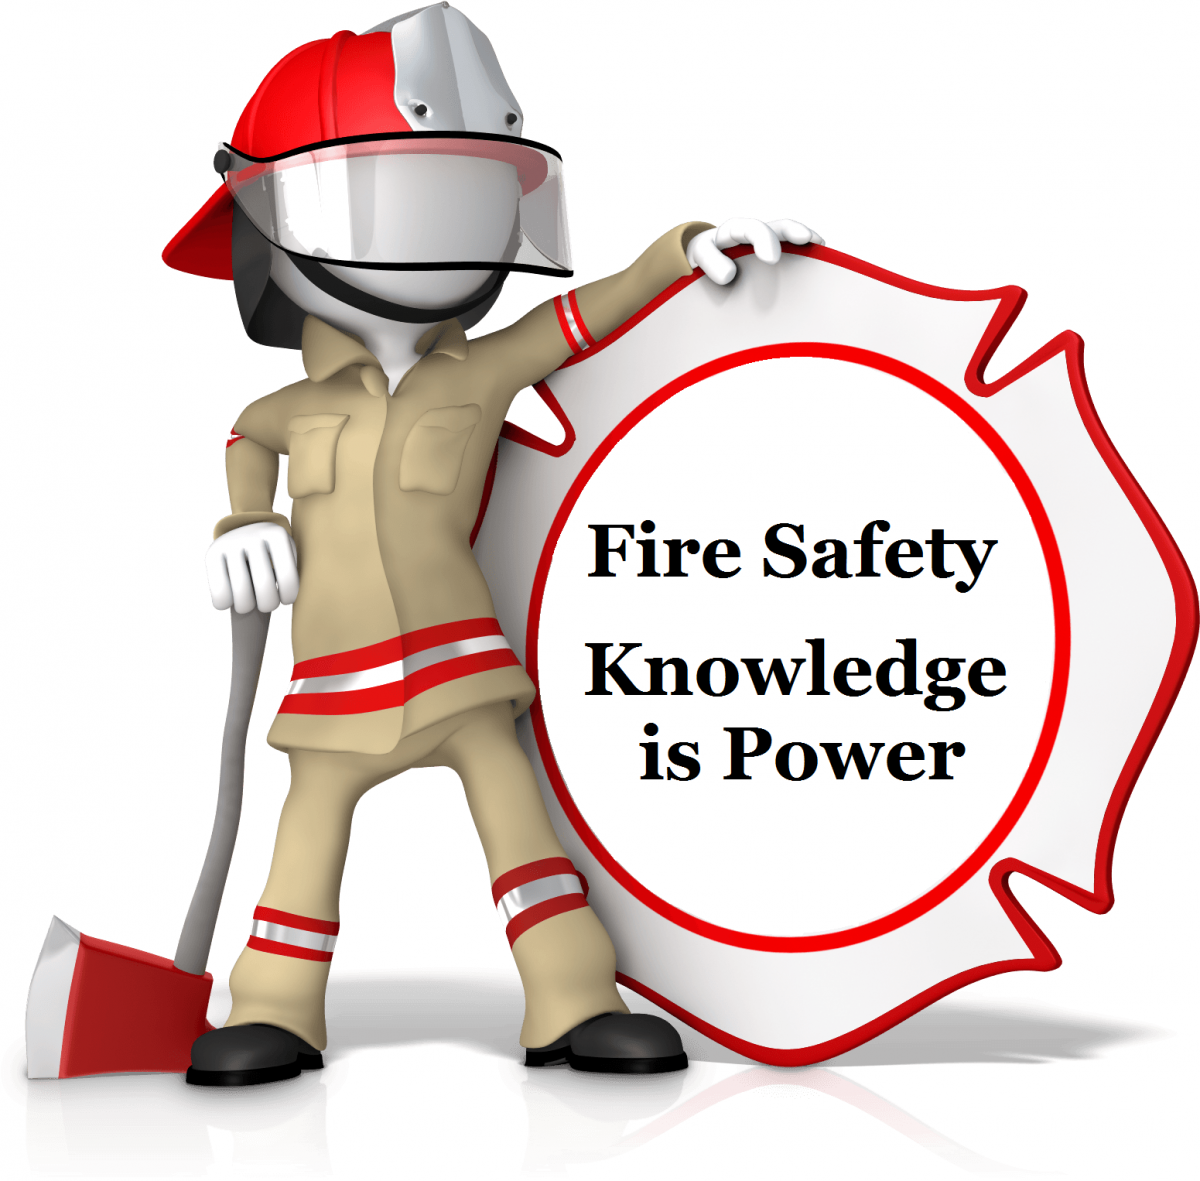 Fire Safety, Knowledge is Power